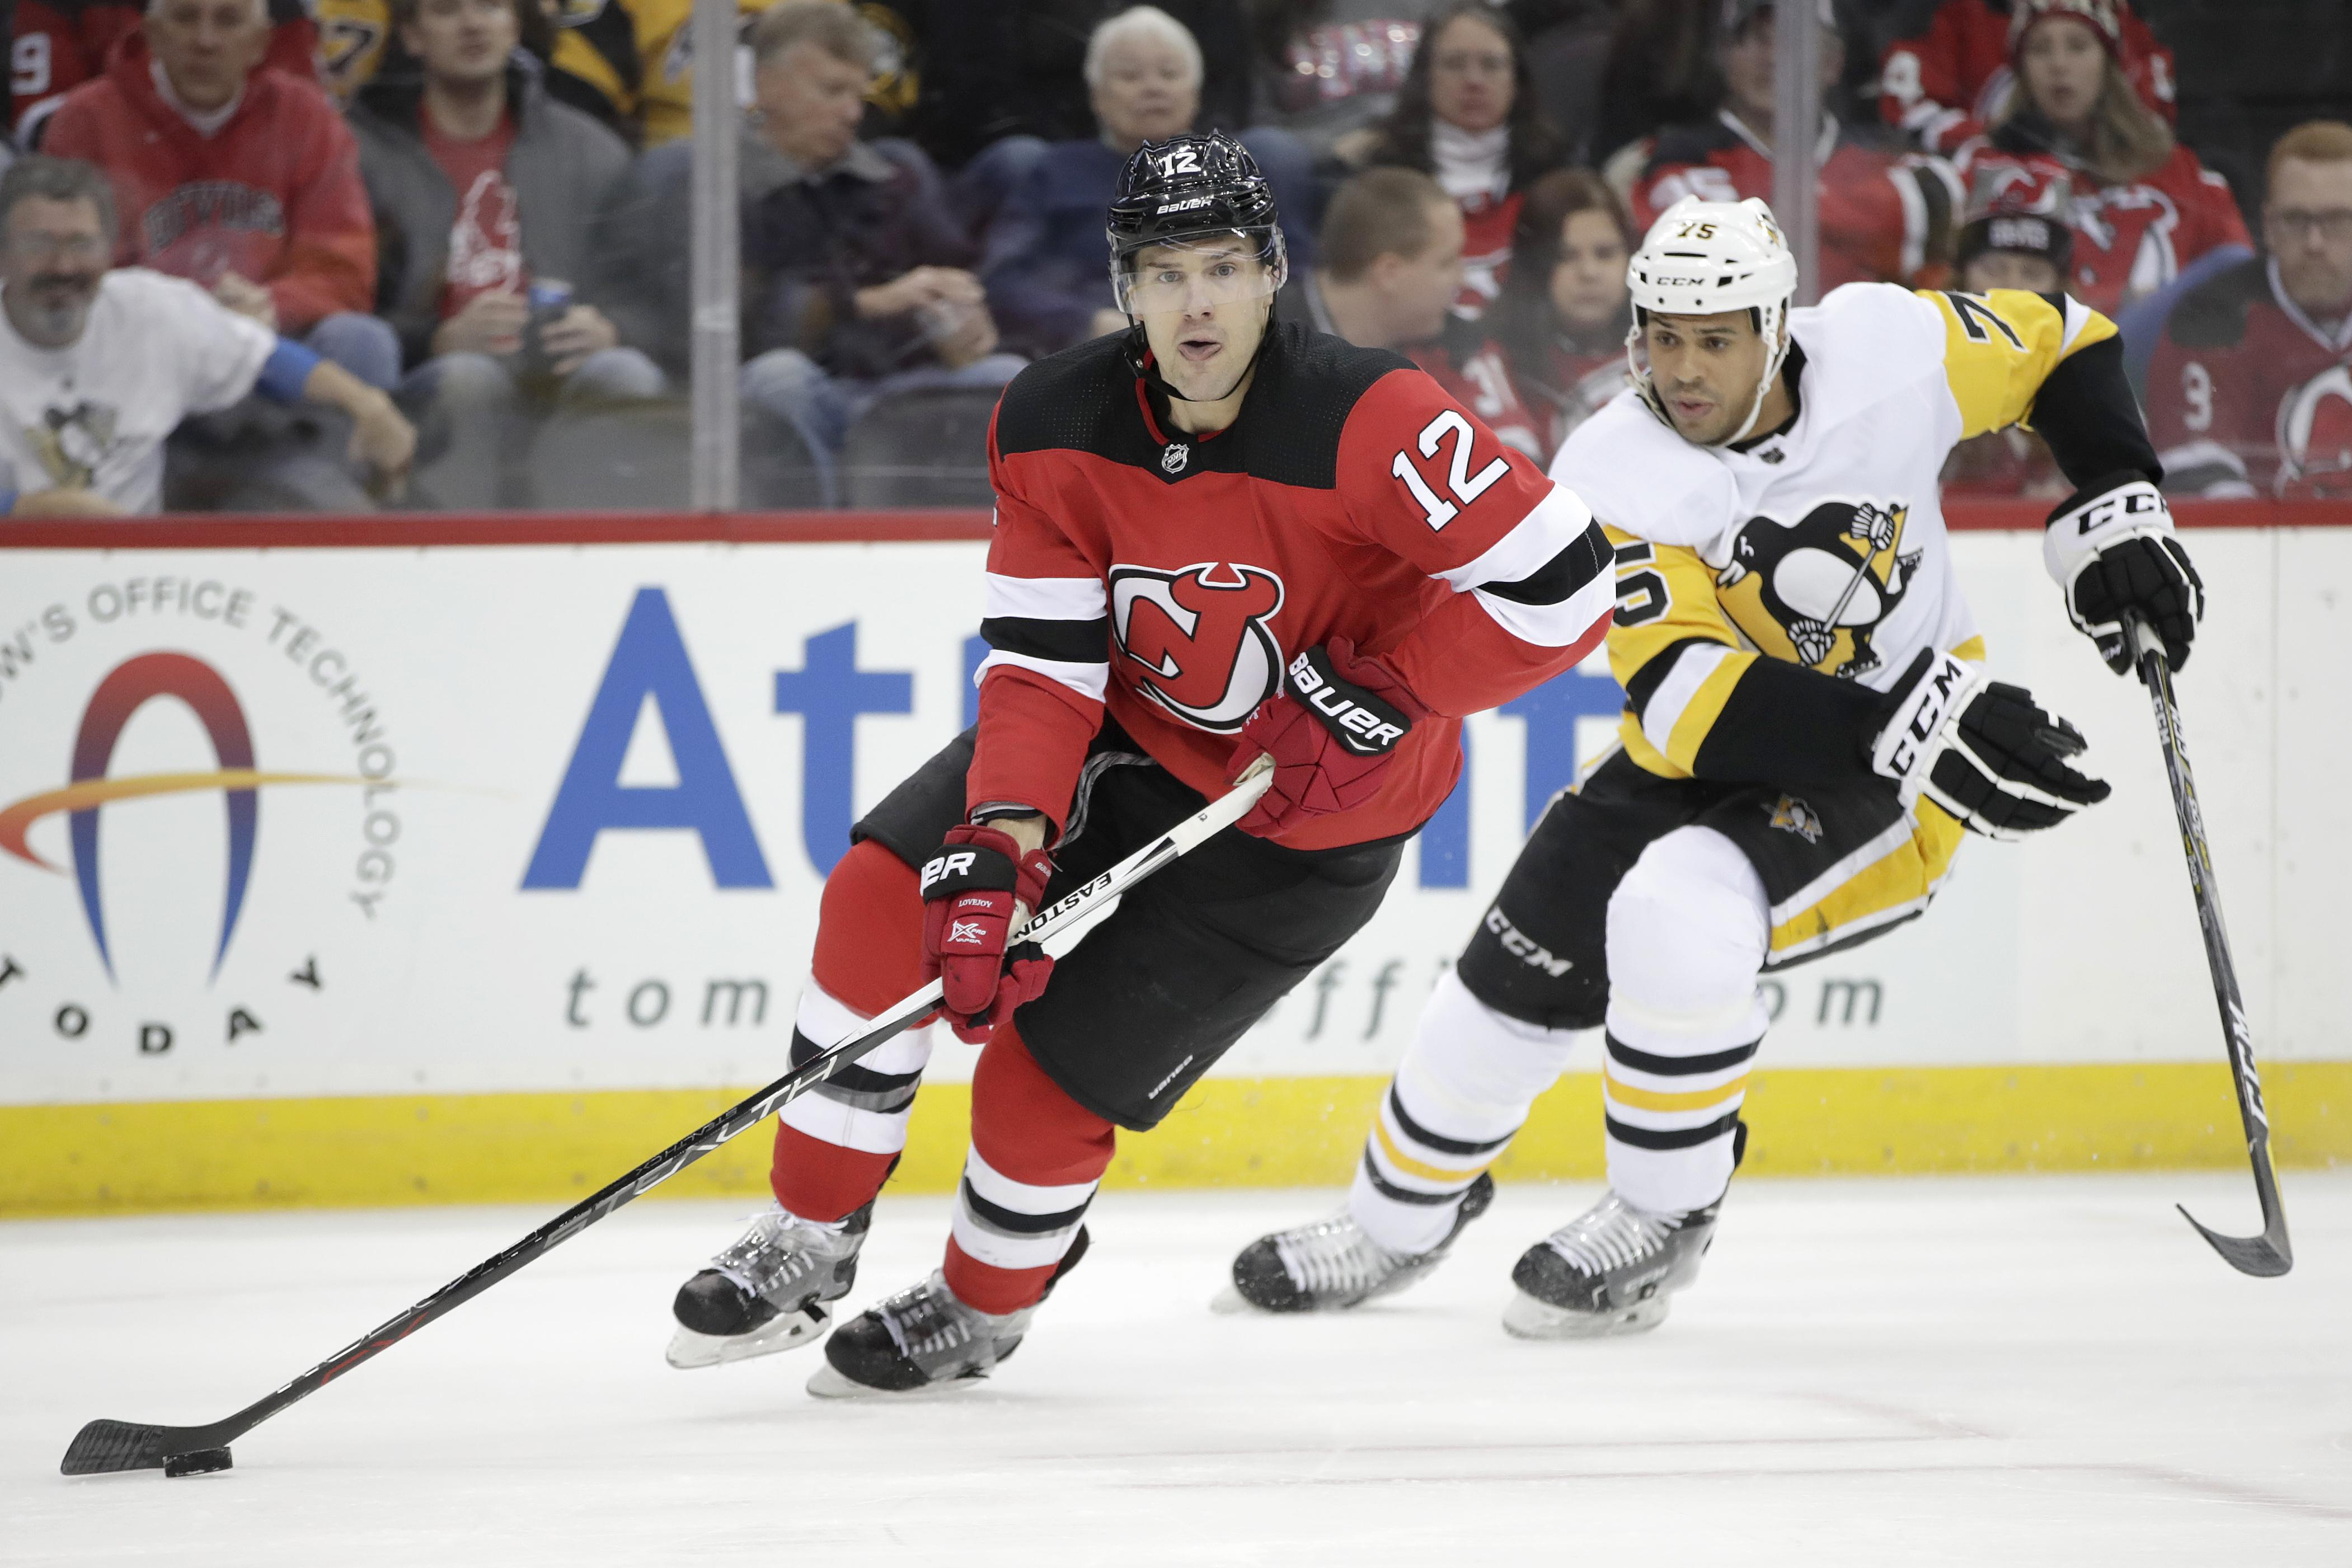 34de7c54e Devils defenseman Ben Lovejoy skates with the puck, trailed by Penguins  right wing Ryan Reaves